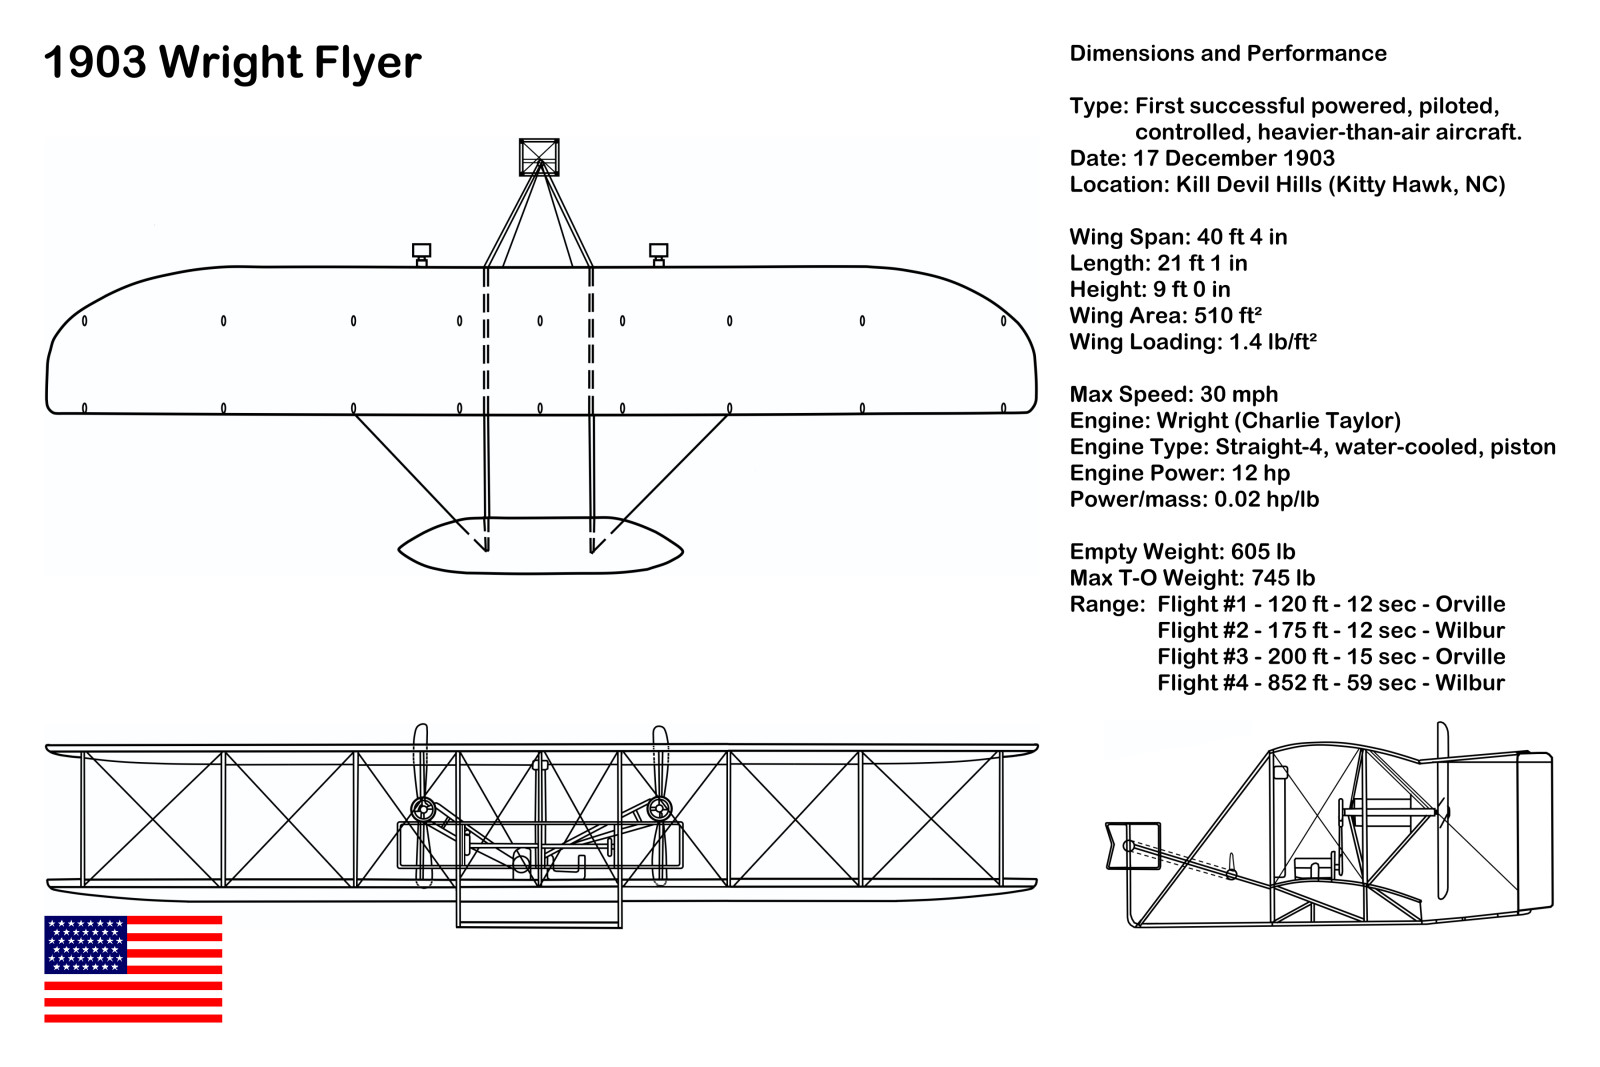 First Flight Kitty Hawk 1903 with regard to 1903 wright flyer single-engine single-place pioneer biplane